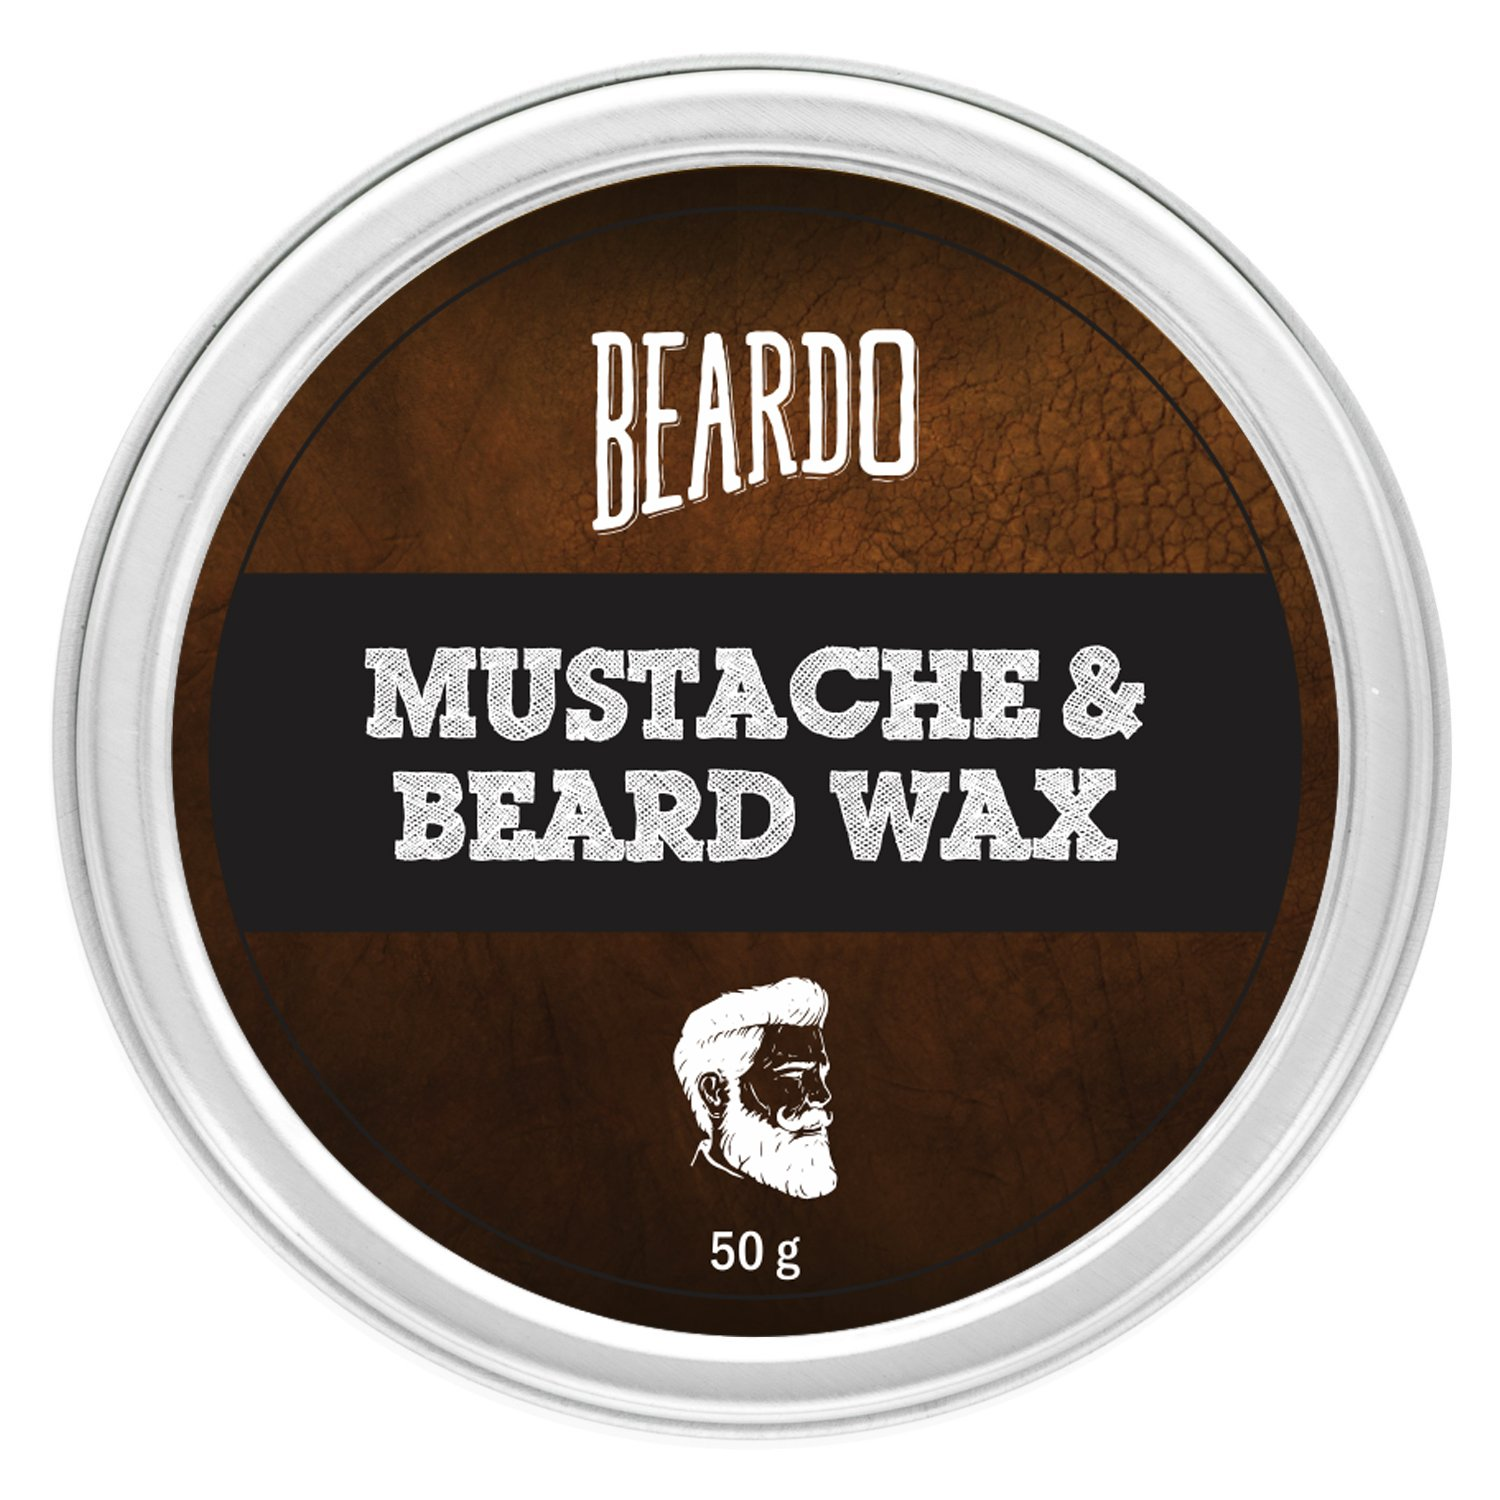 Top Selling Brands Of Beard Wax Available in India